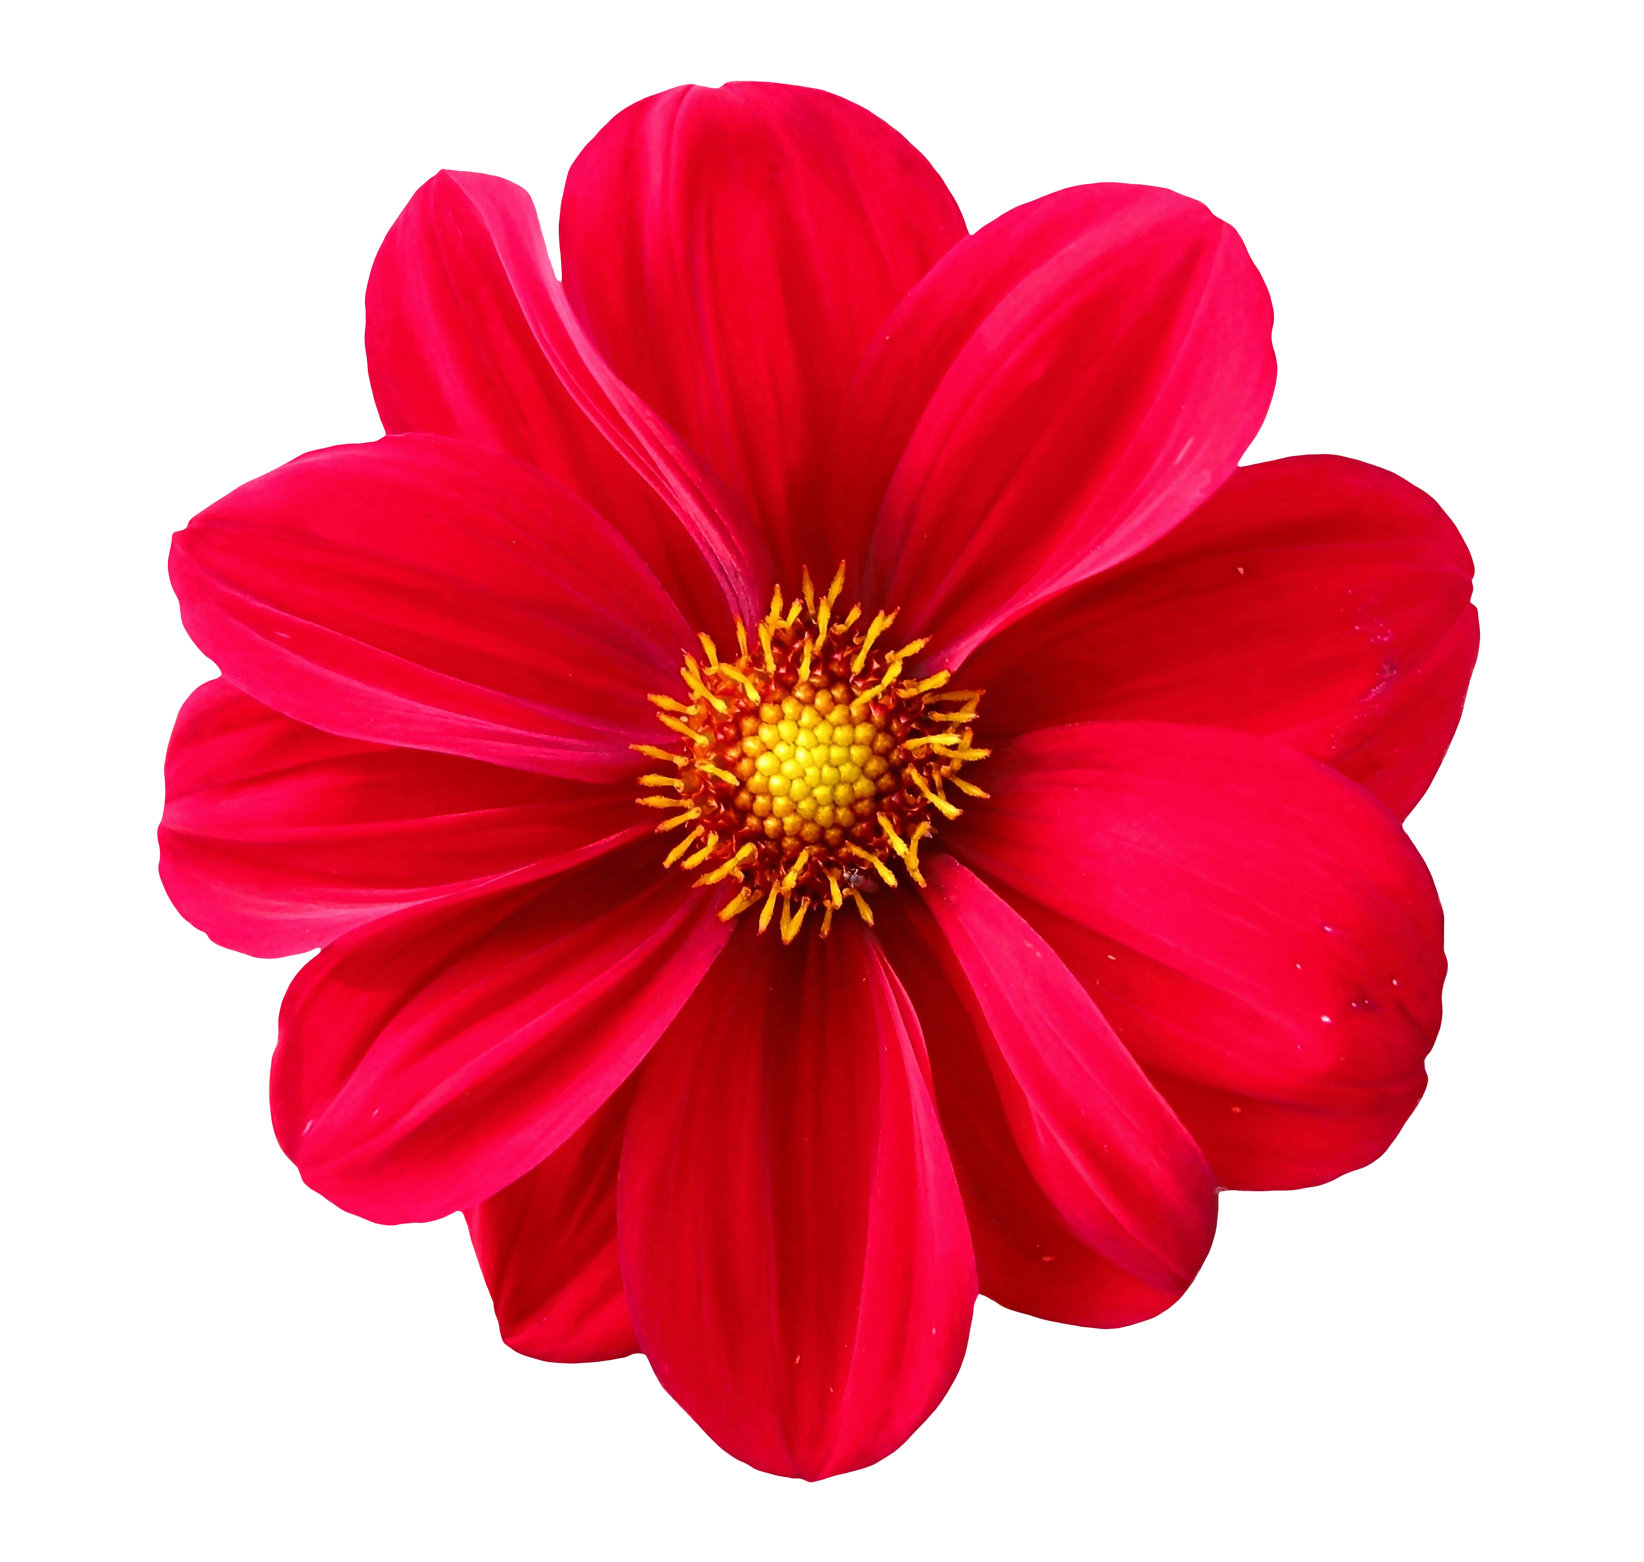 Flower images pluspng dahlia. Flowers transparent png image freeuse library